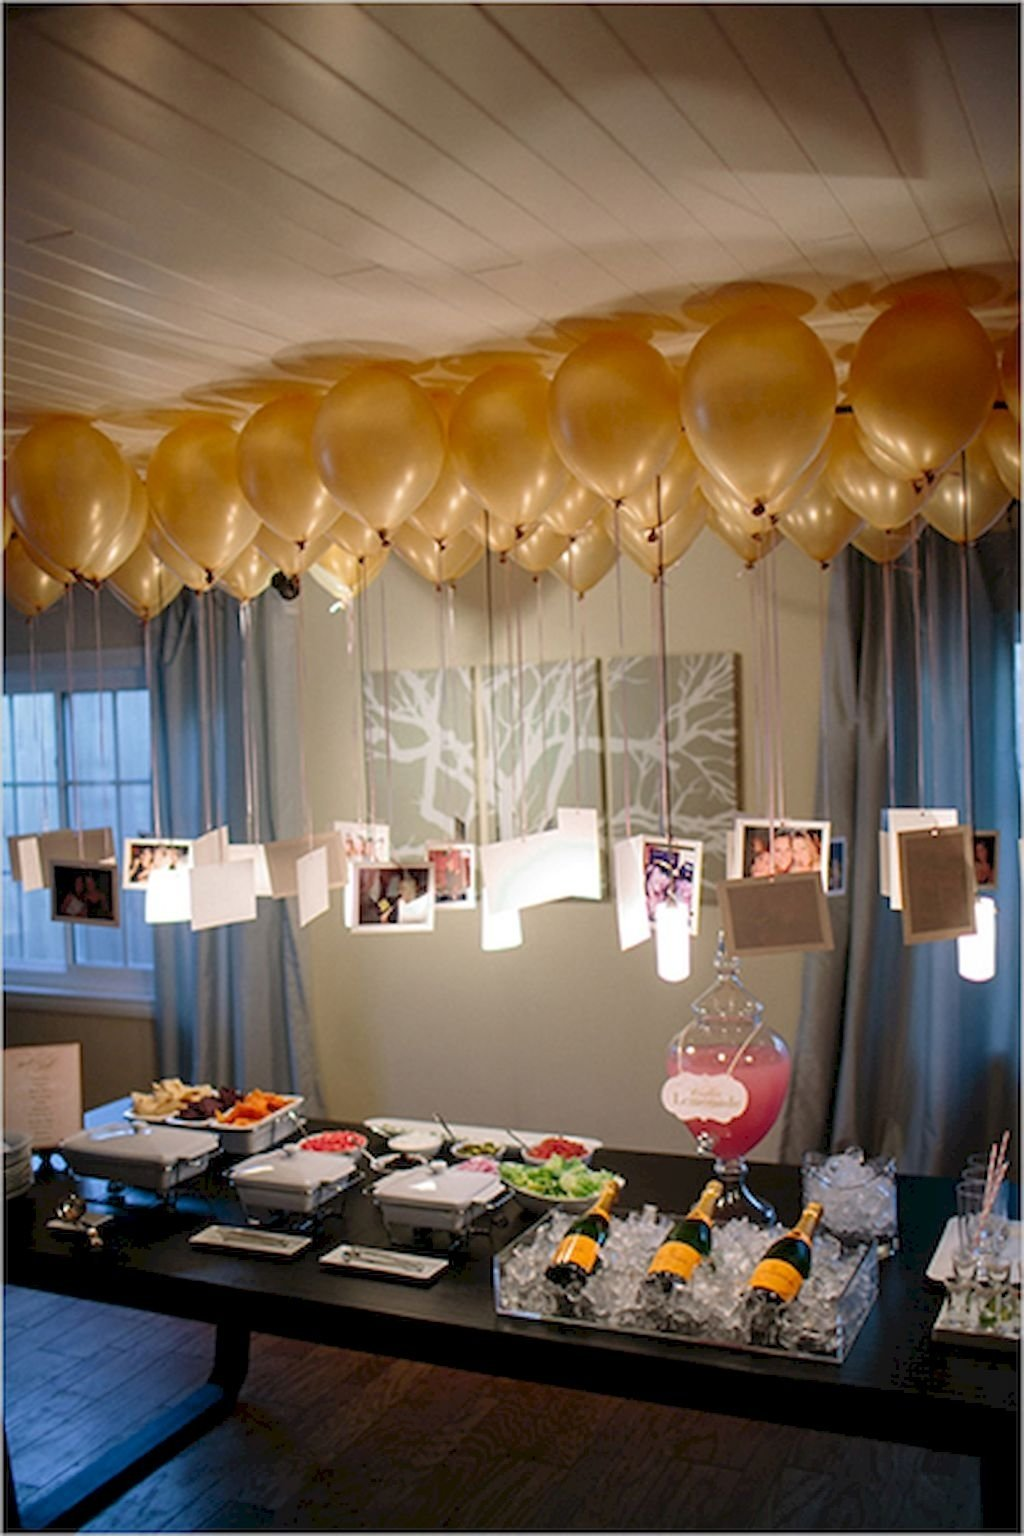 10 Stunning Decorating Ideas For Bridal Shower 75 creative bridal shower decoration ideas bitecloth 2020